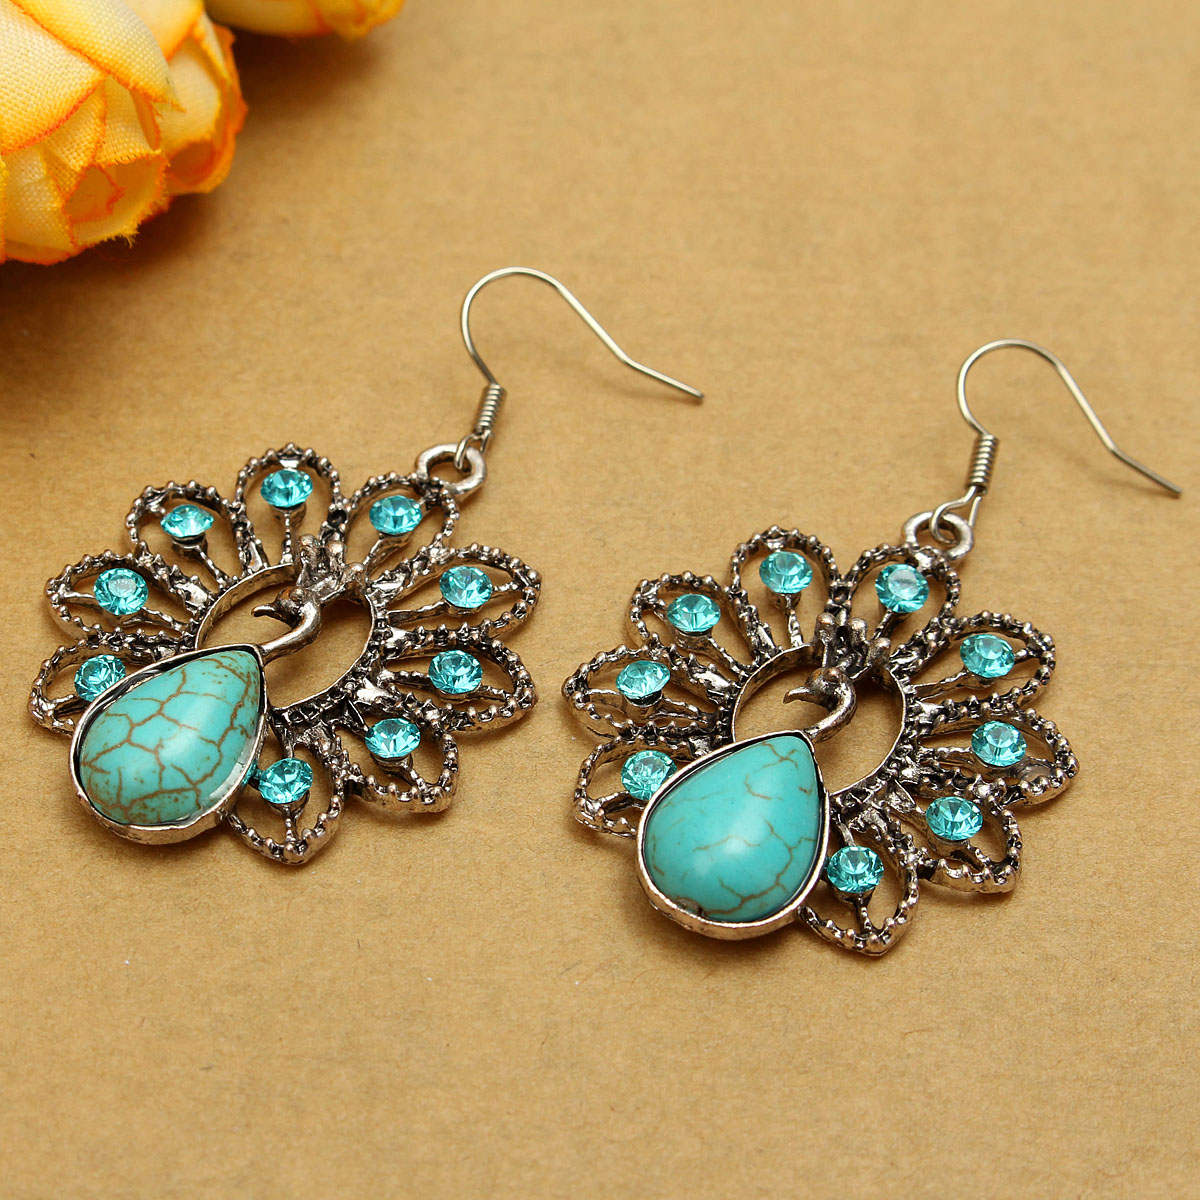 Retro Turquoise Rhinestone Peacock Satement Drop Earrings For Women